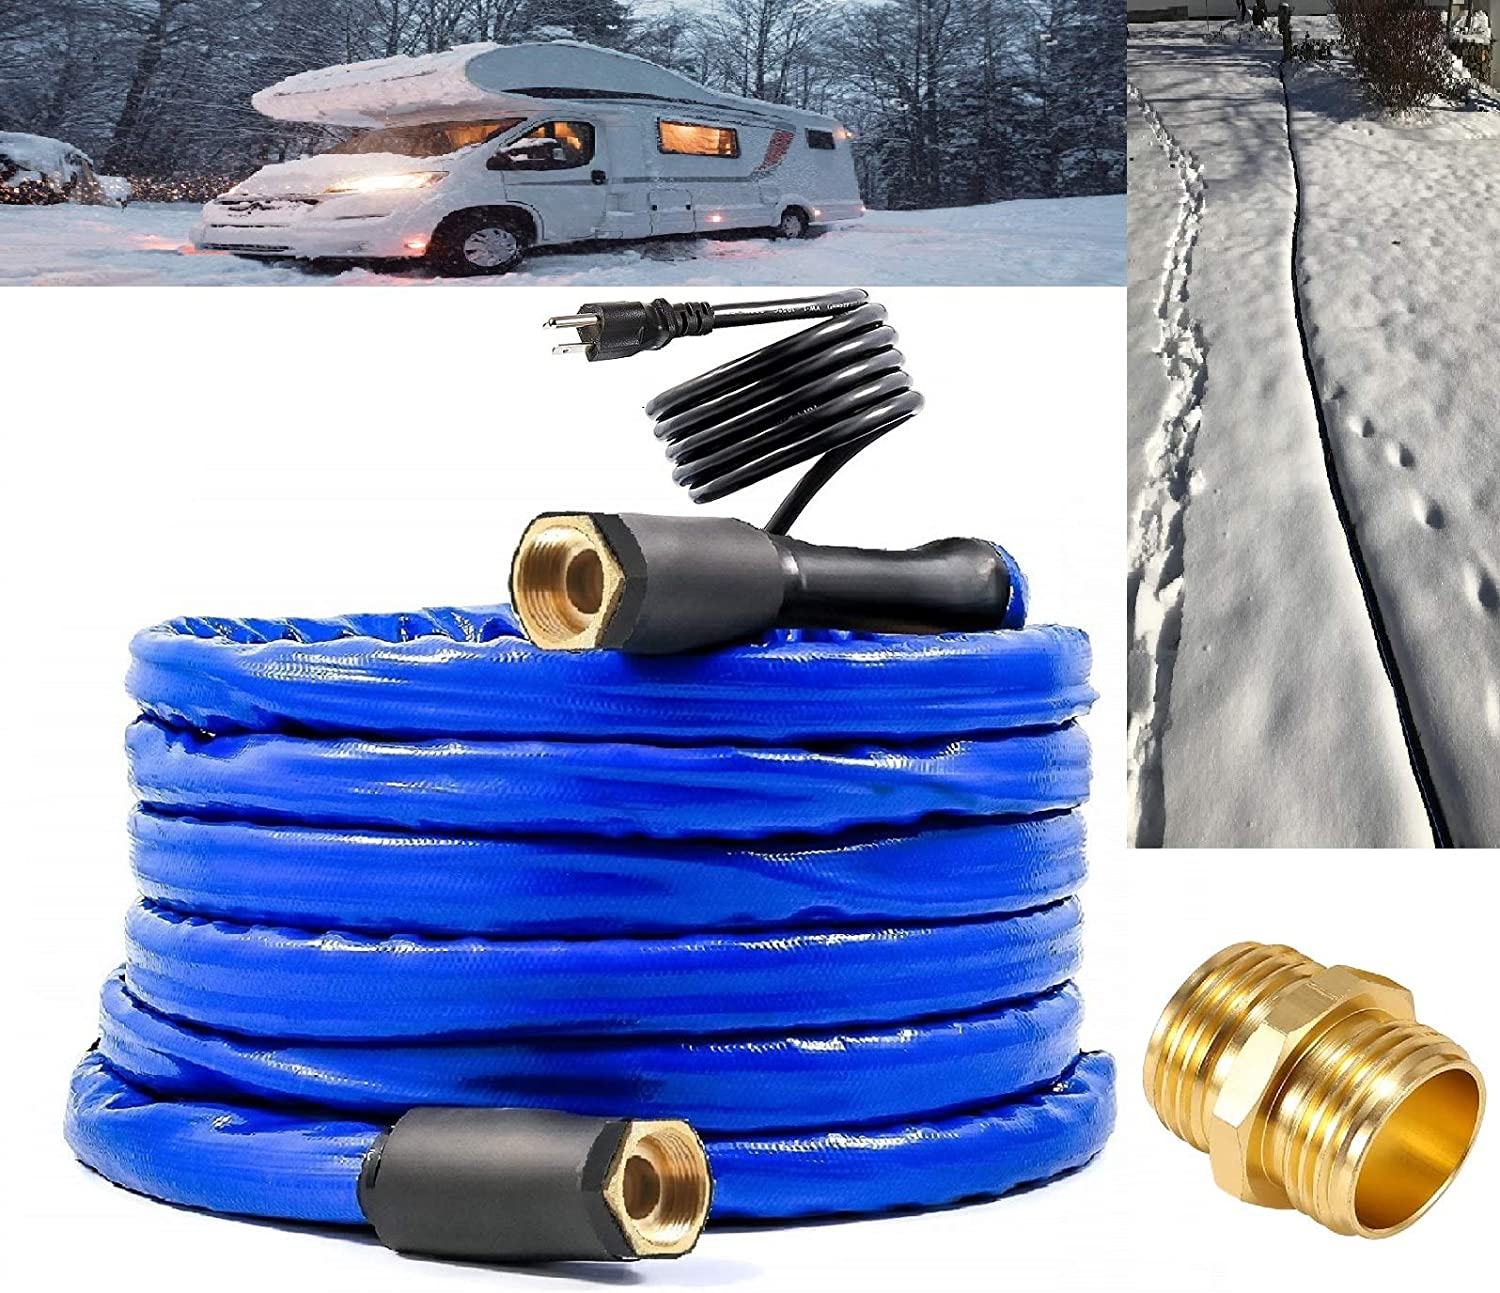 H&G lifestyles Heated Water Hose for RV